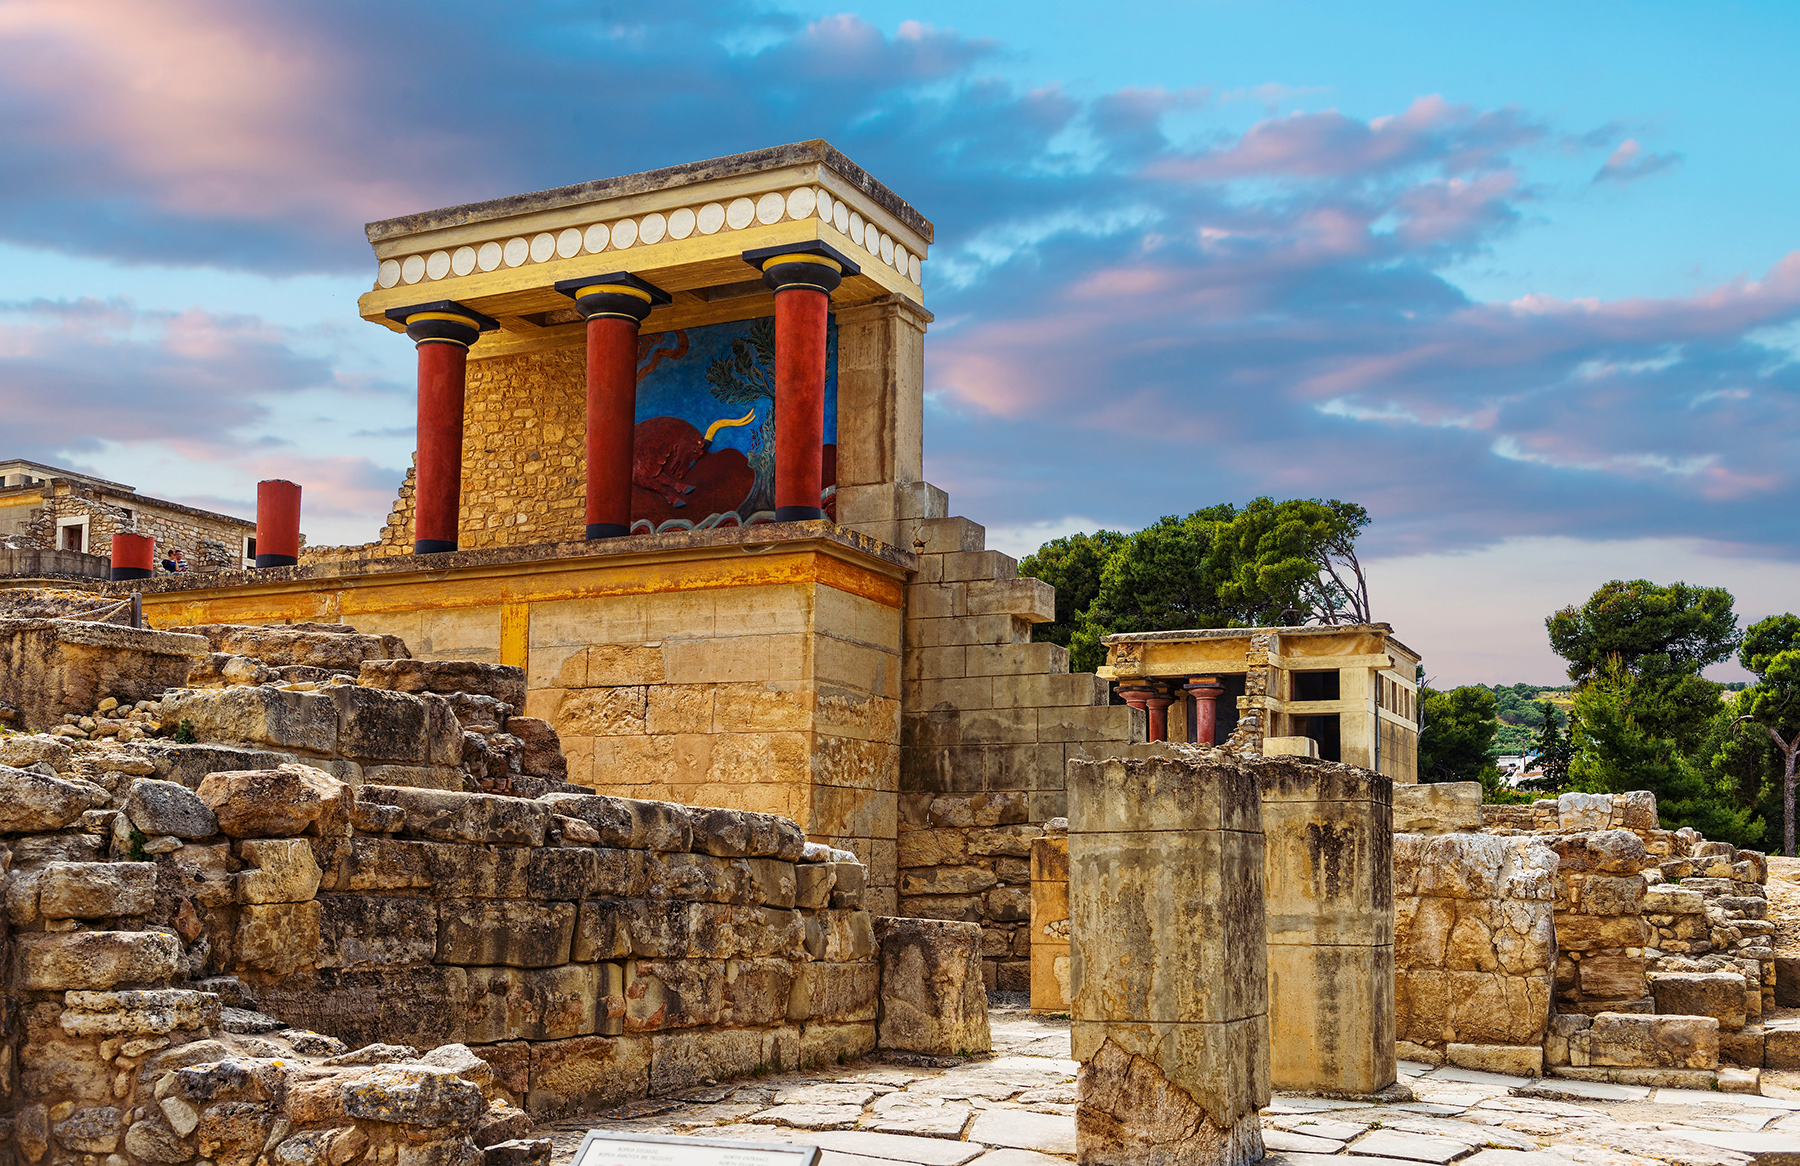 The minoan palace of Knossos in Heraklion